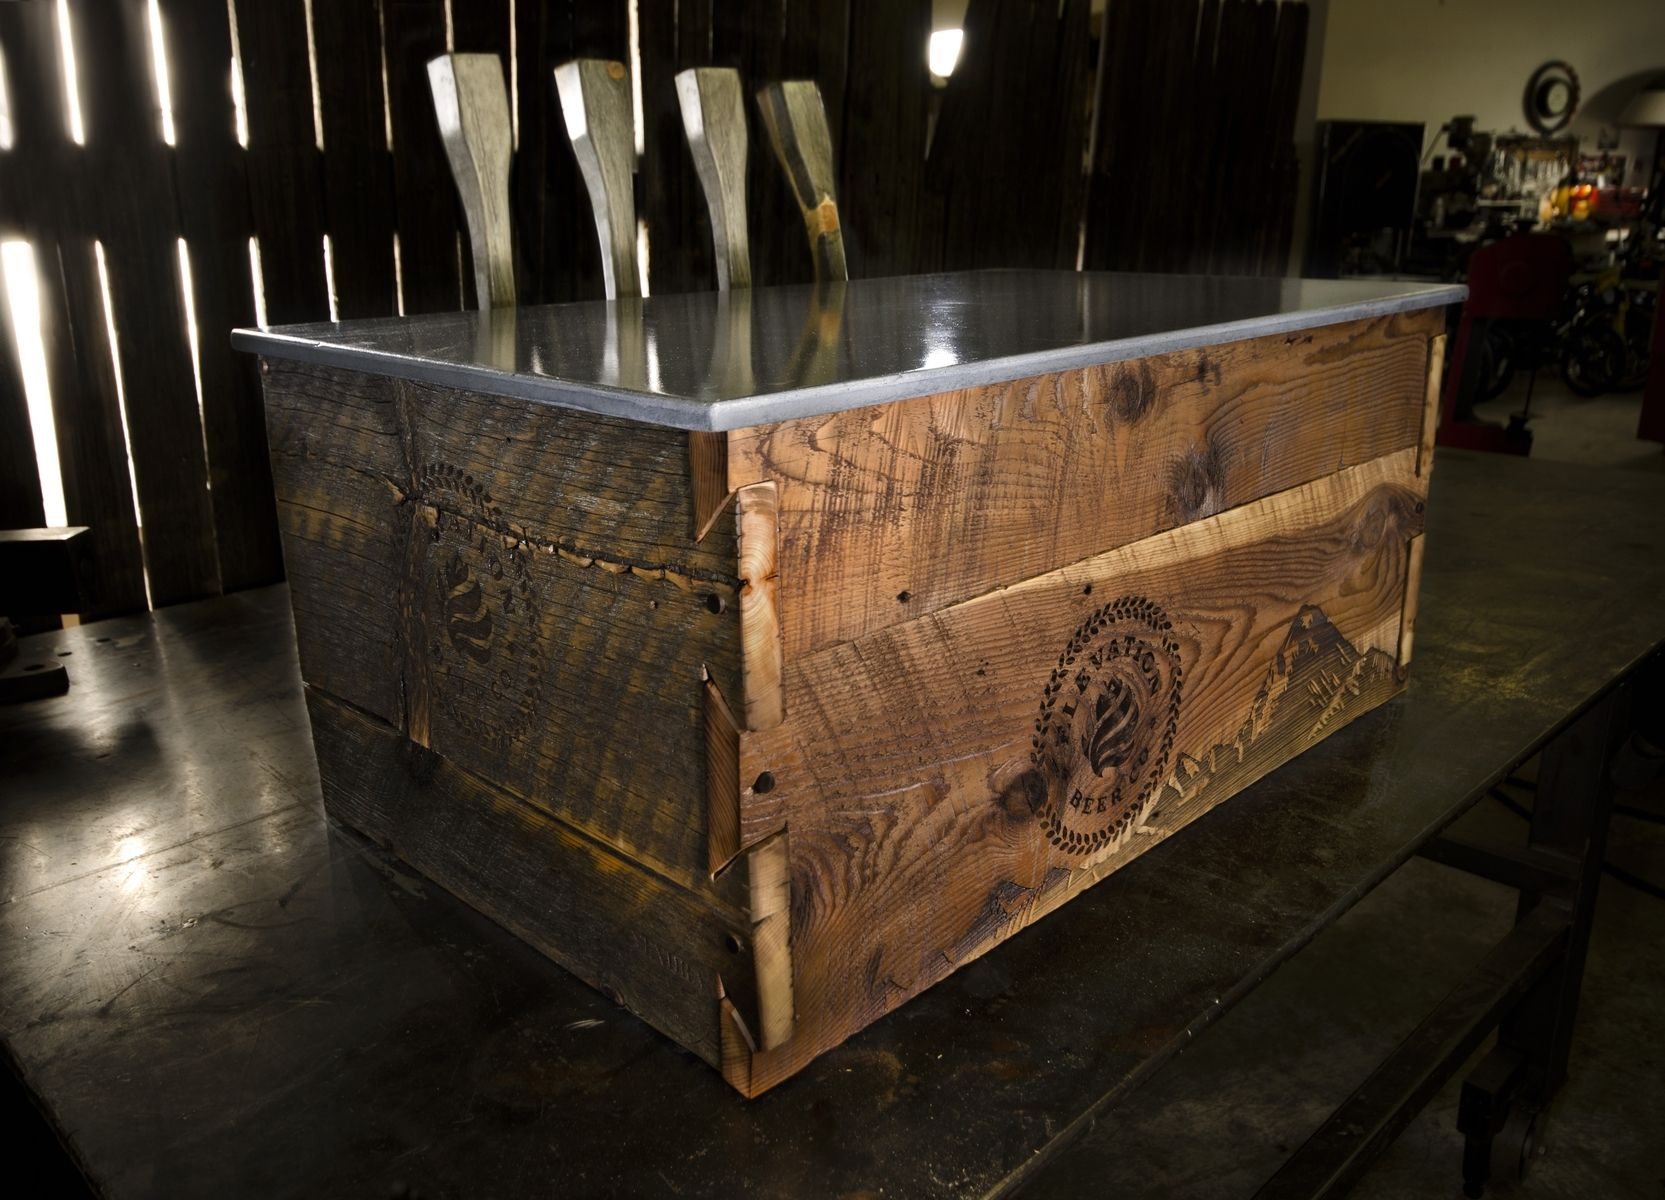 Hand Crafted Jockey Boxes By Yendrabuilt